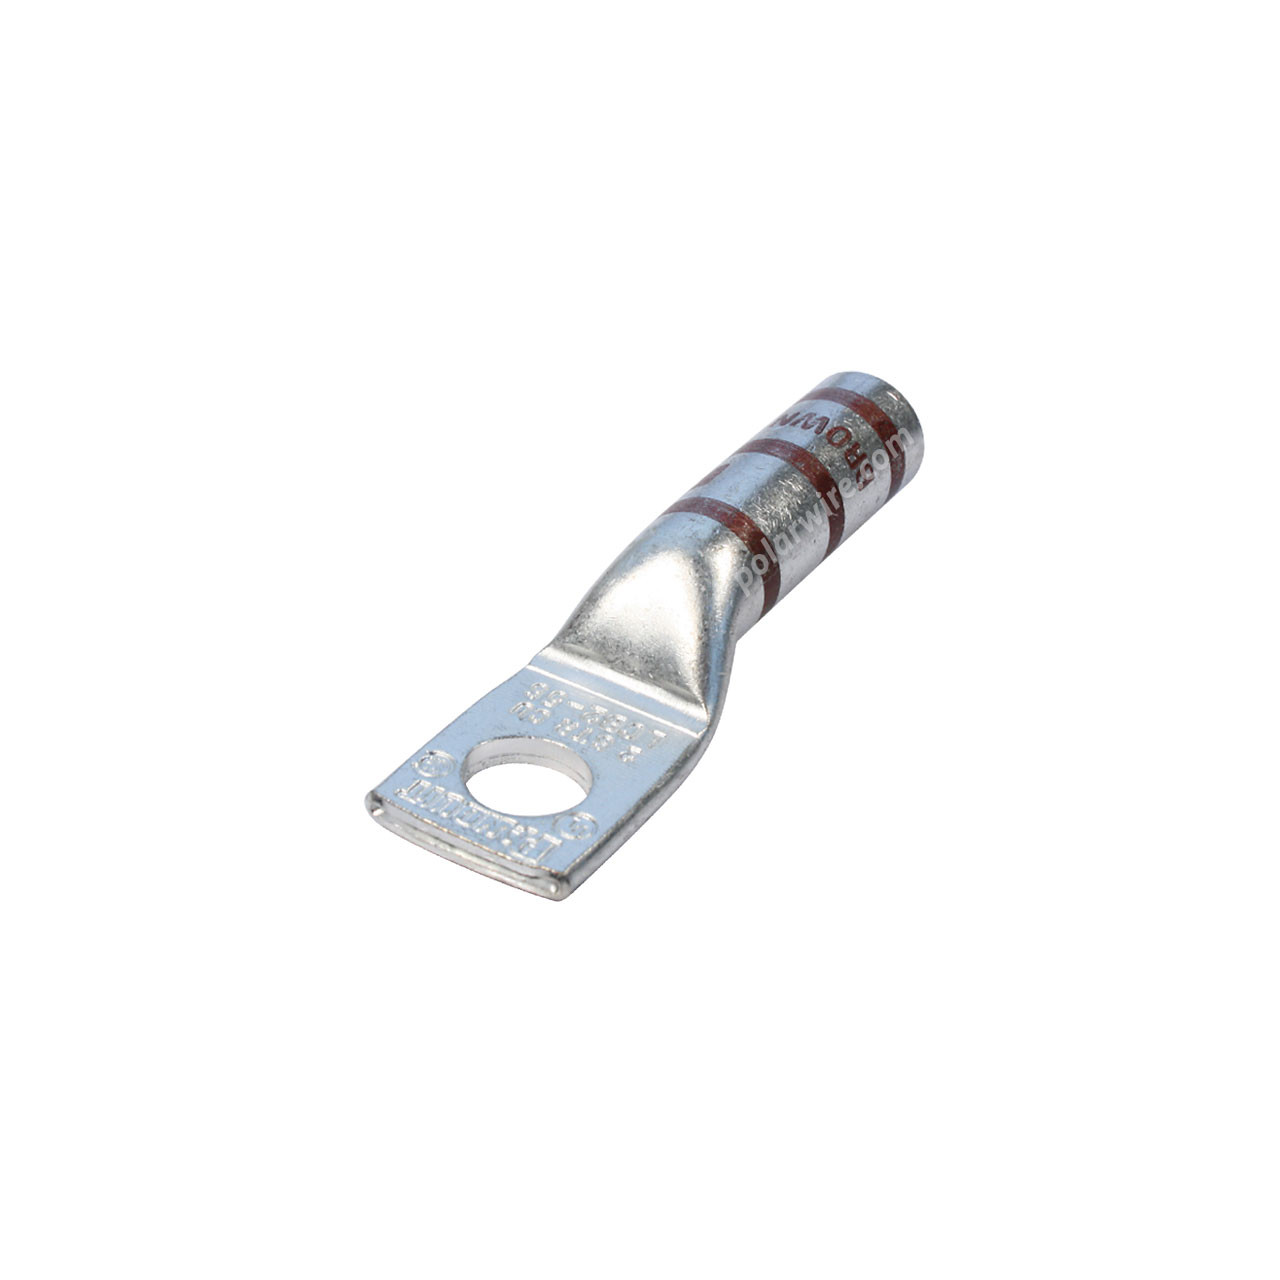 2 gauge code long barrel heavy duty compression lug, 5/16 inch stud, high strength, highly conductive electrolytic tin plated copper